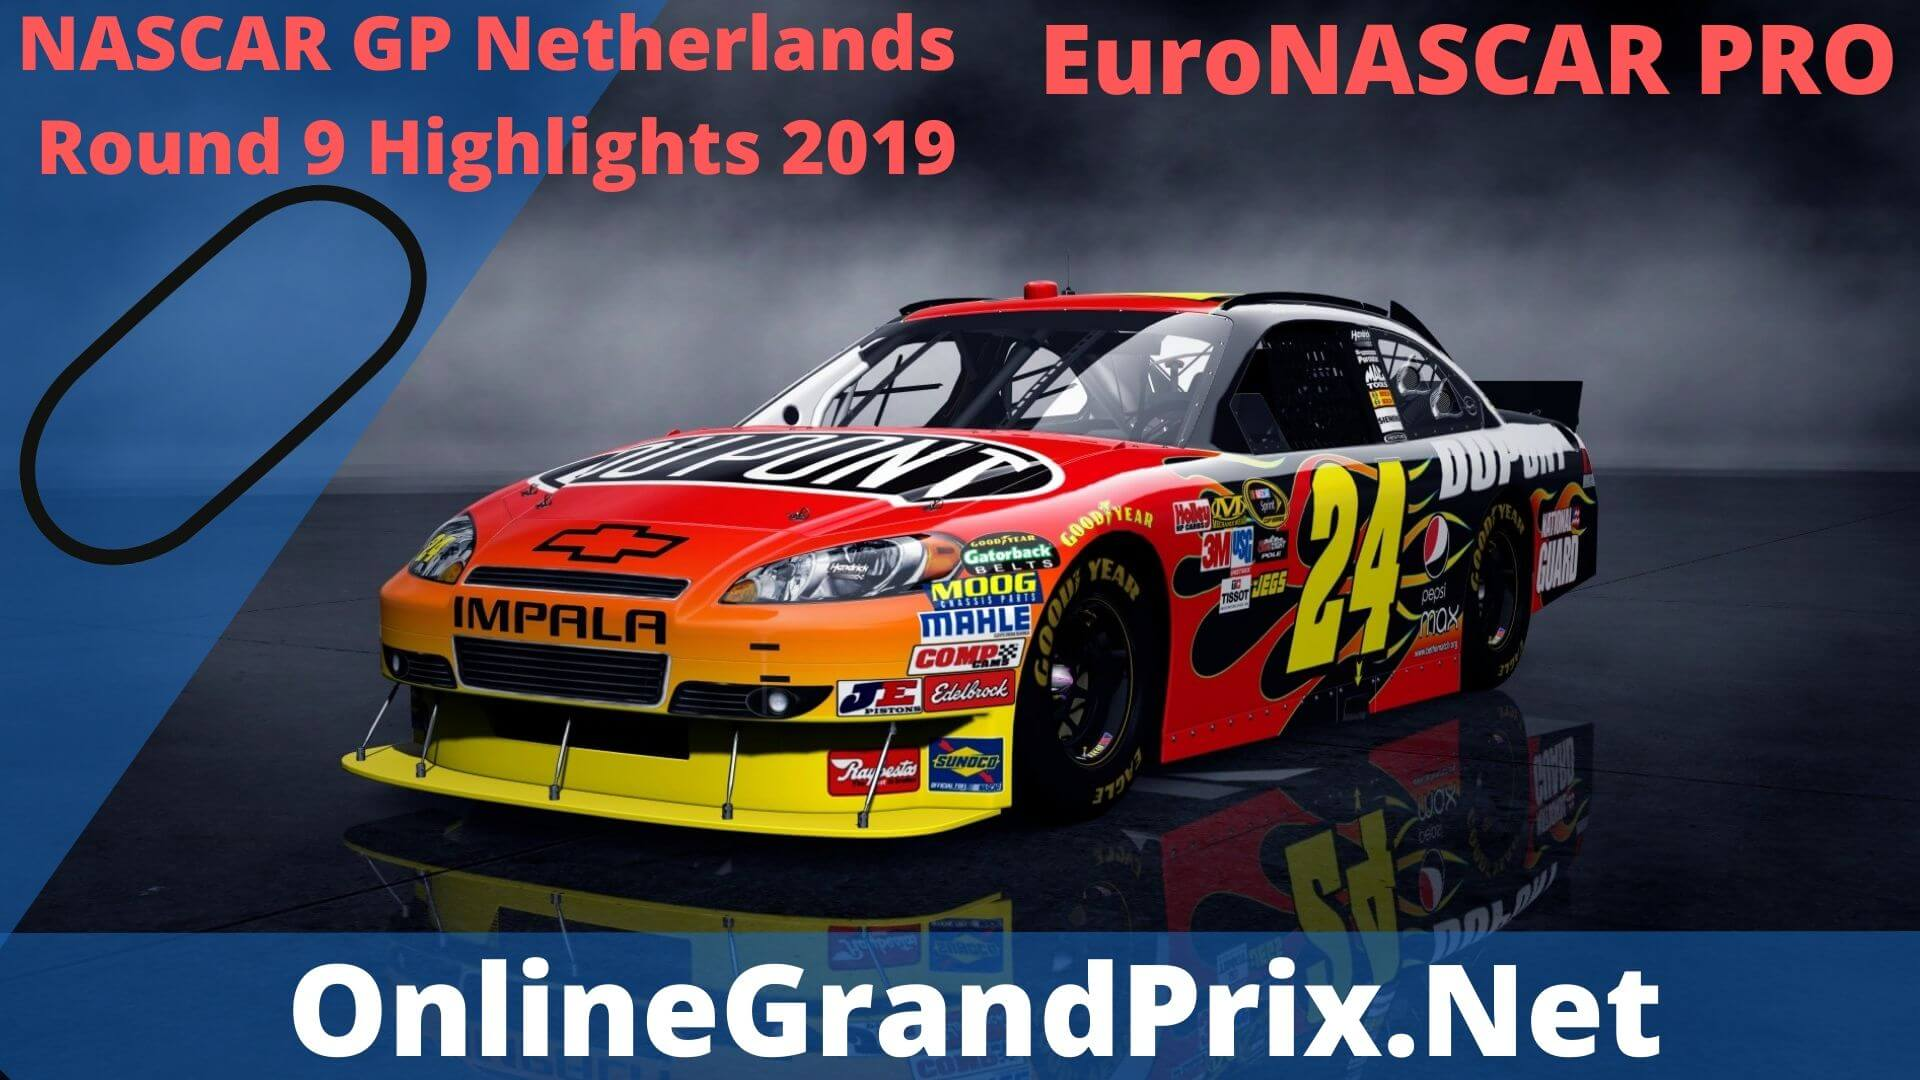 NASCAR GP Netherlands Round 9 Highlights 2019